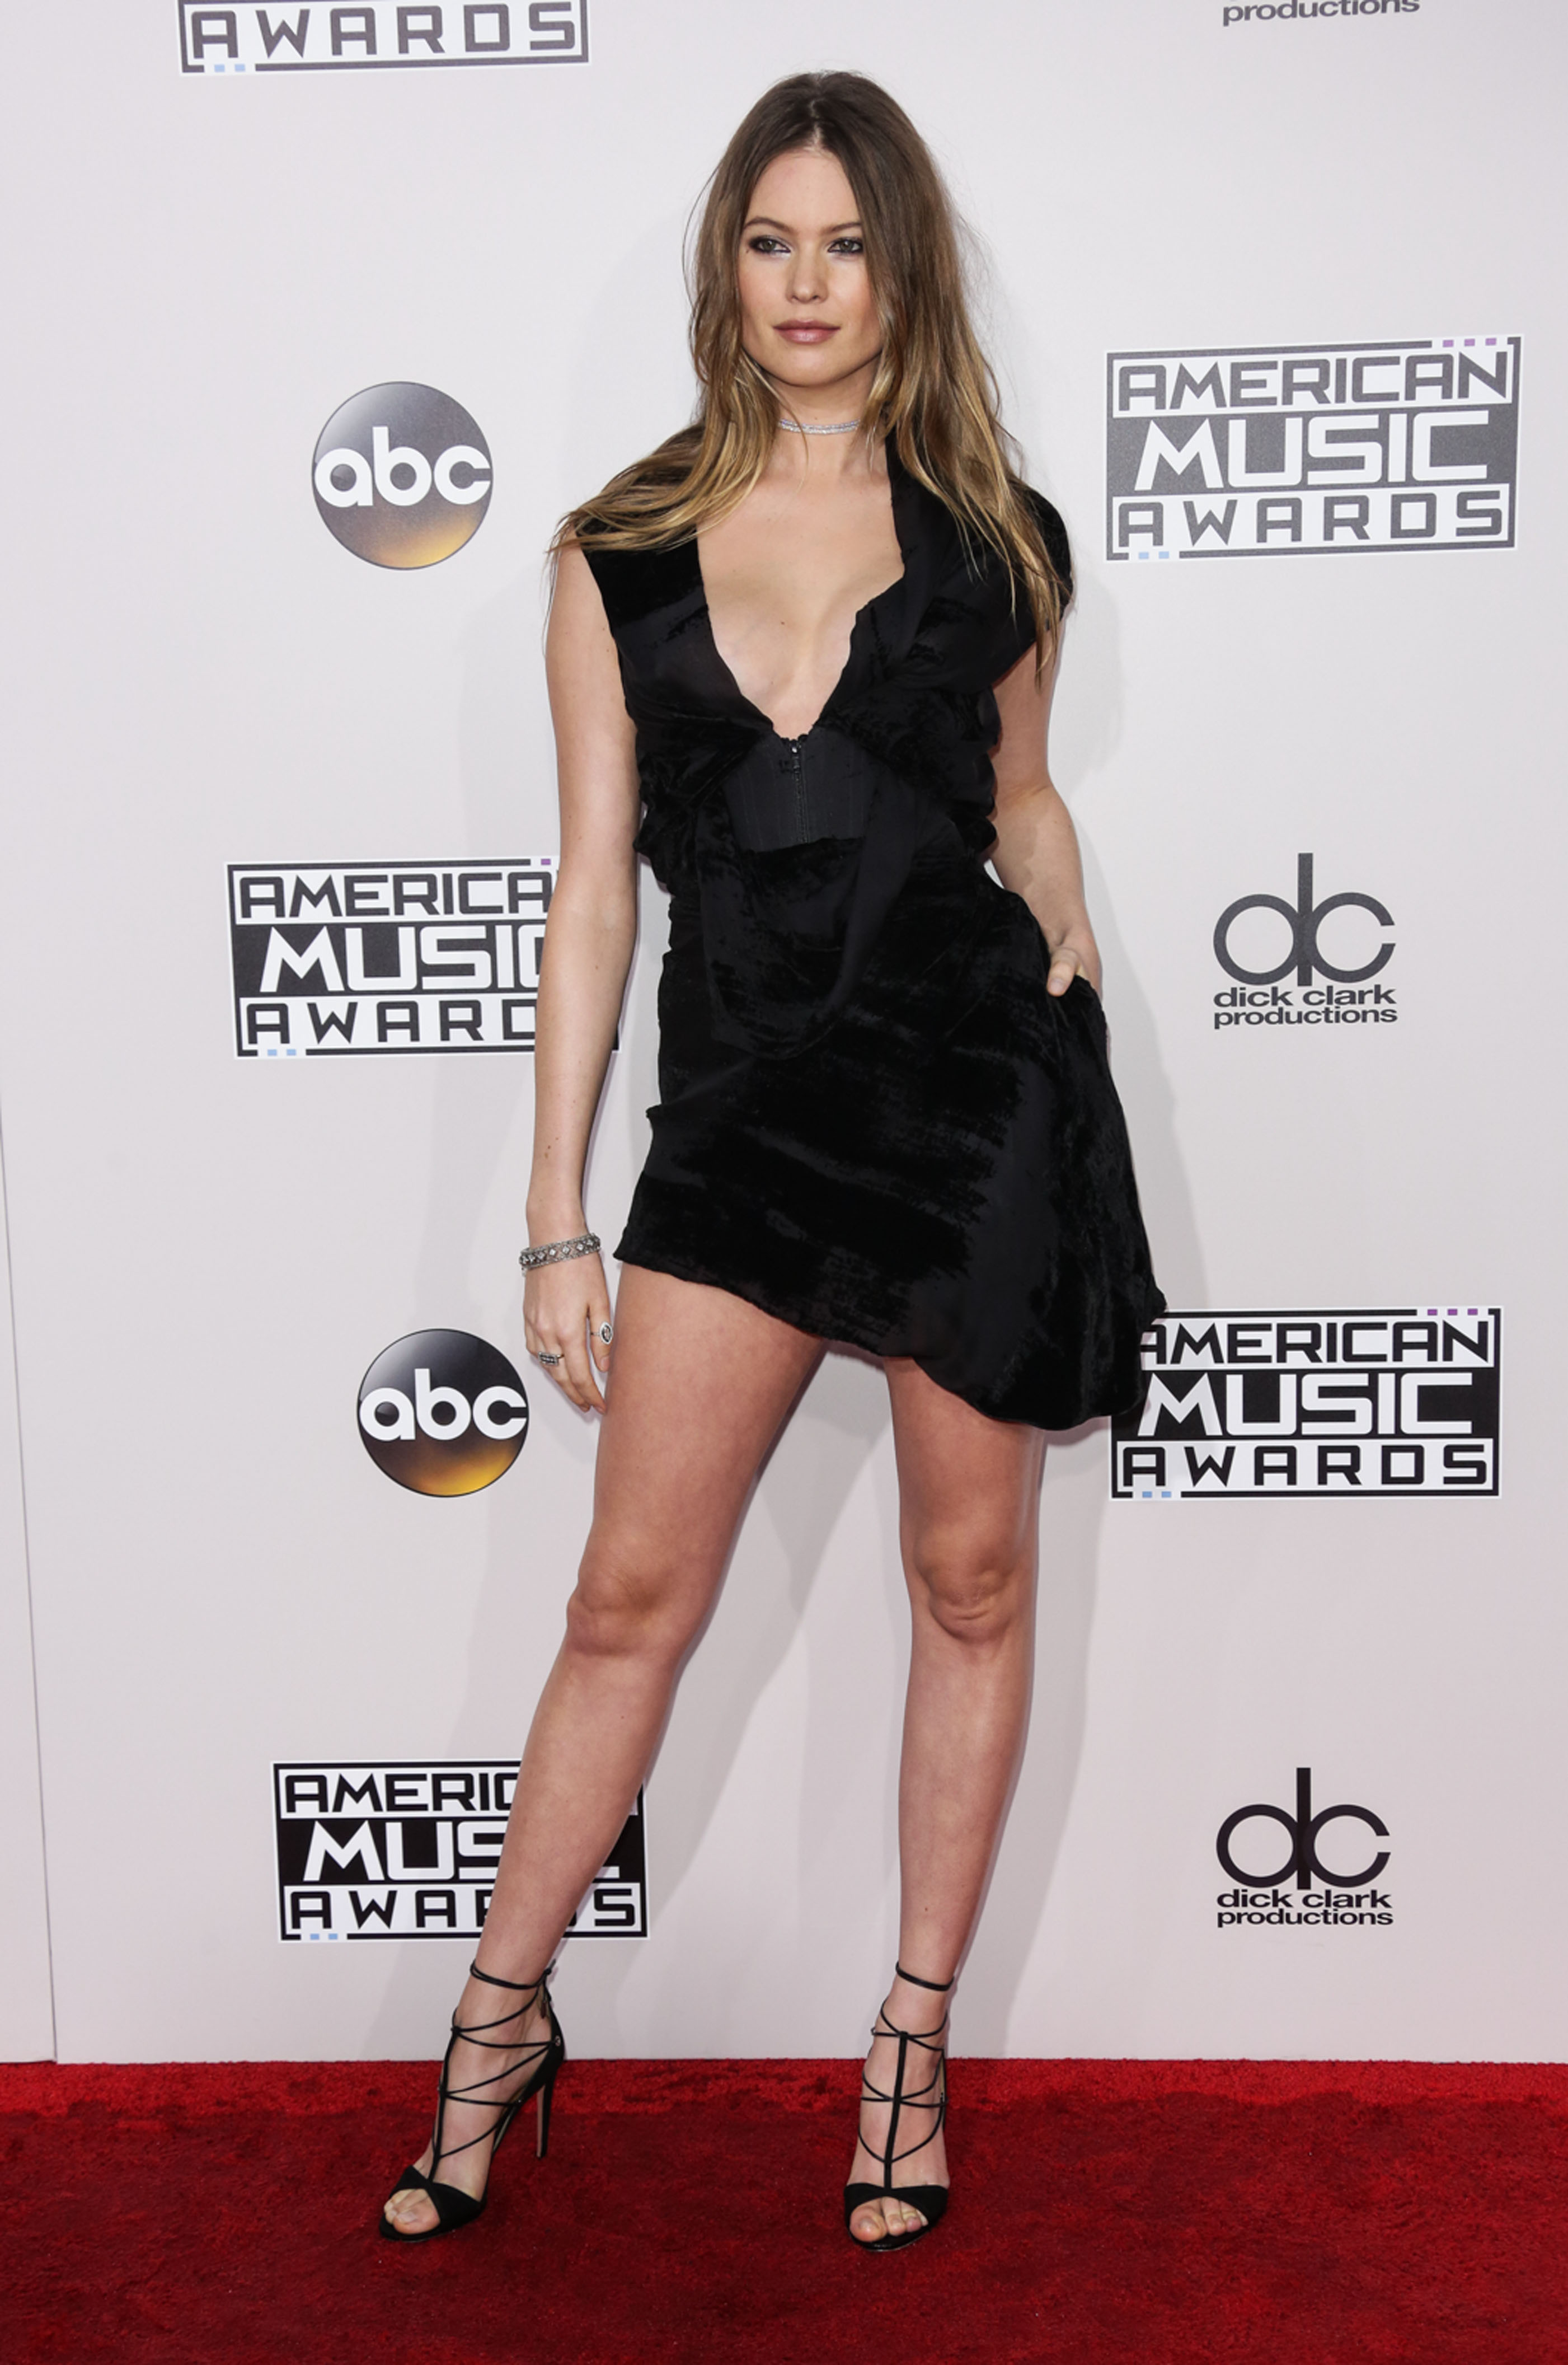 Model Behati Prinsloo arrives on the Red carpet at 2016 American Music Awards (Photo credit: Splash News)